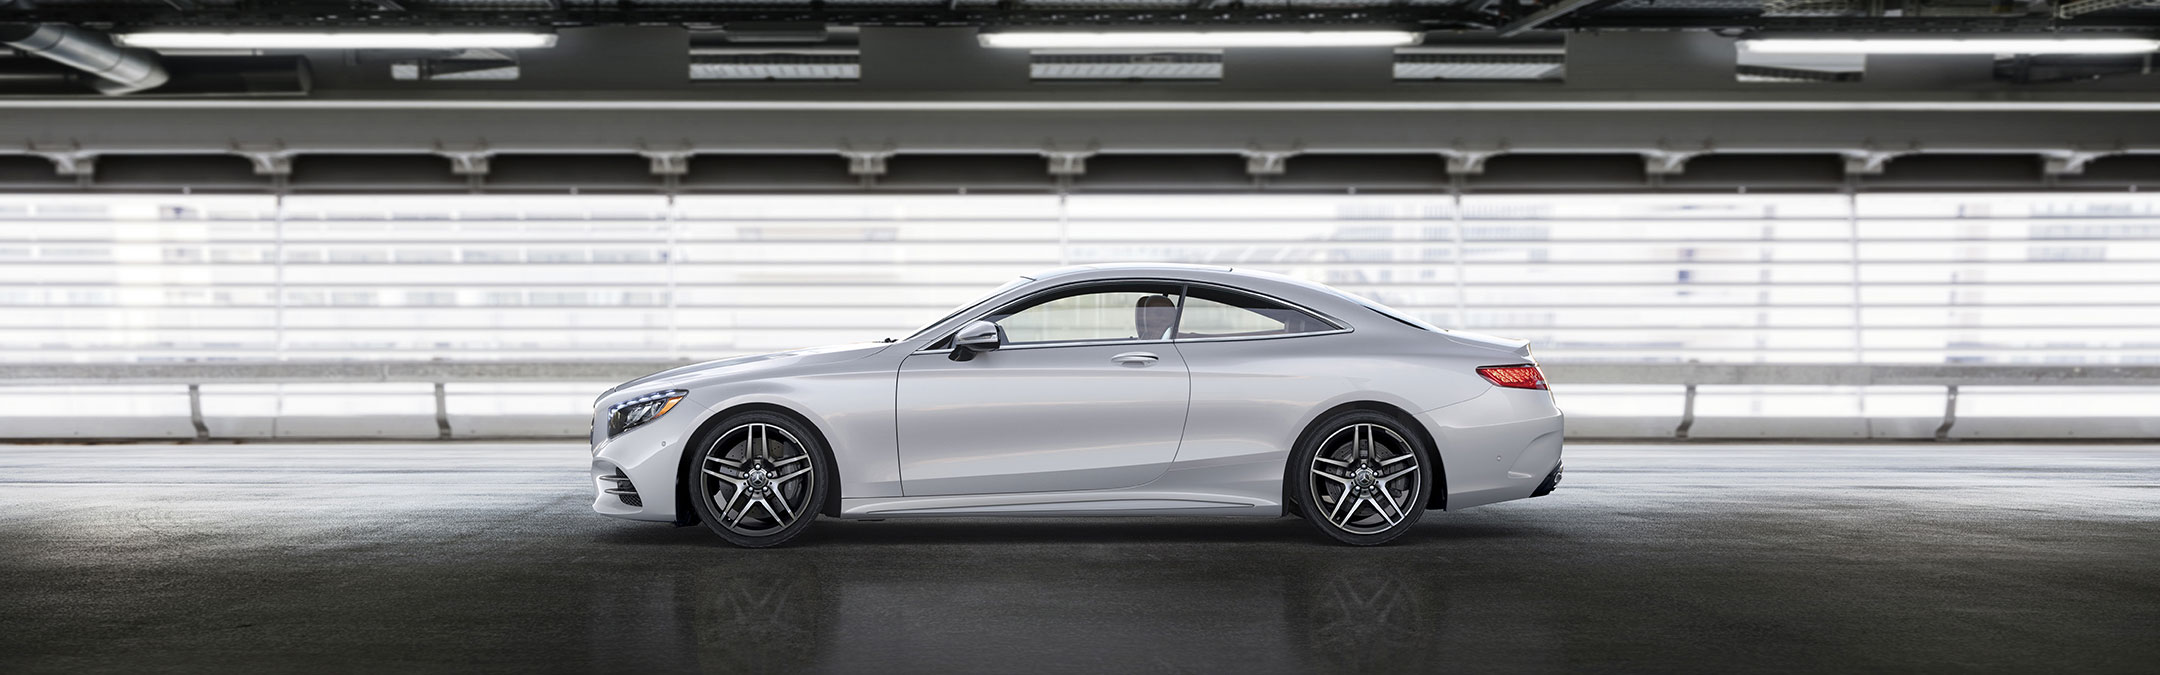 Design du coupé S 2019